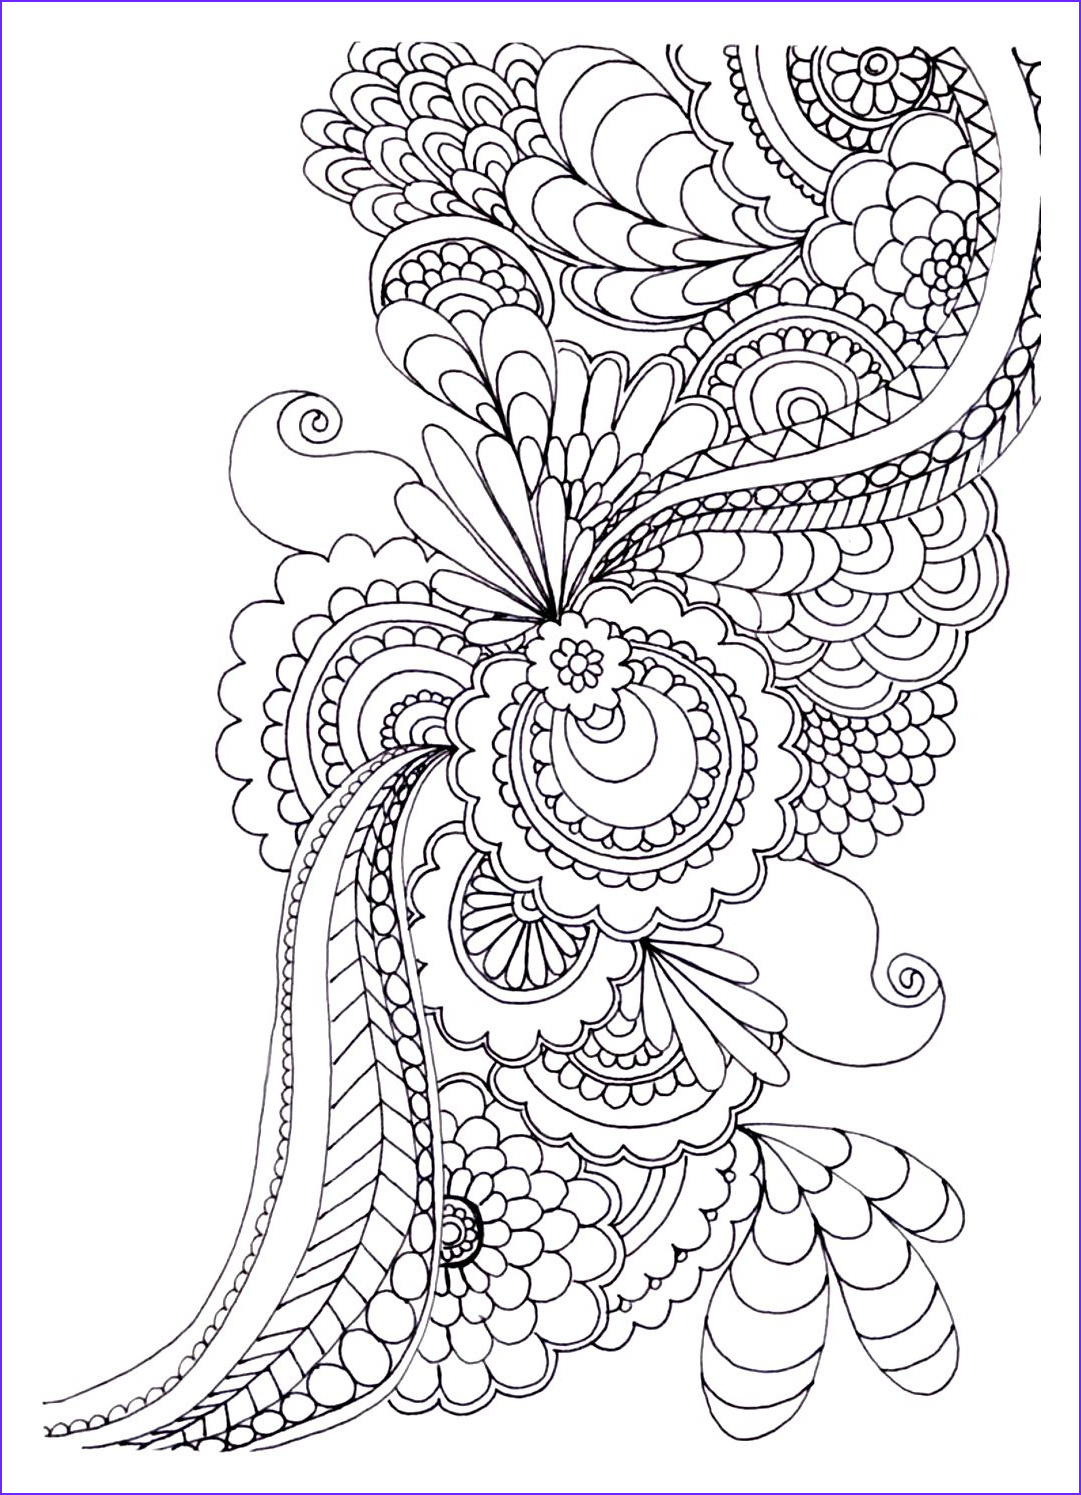 Printables Coloring Pages Best Of Photos 20 Free Adult Colouring Pages the organised Housewife